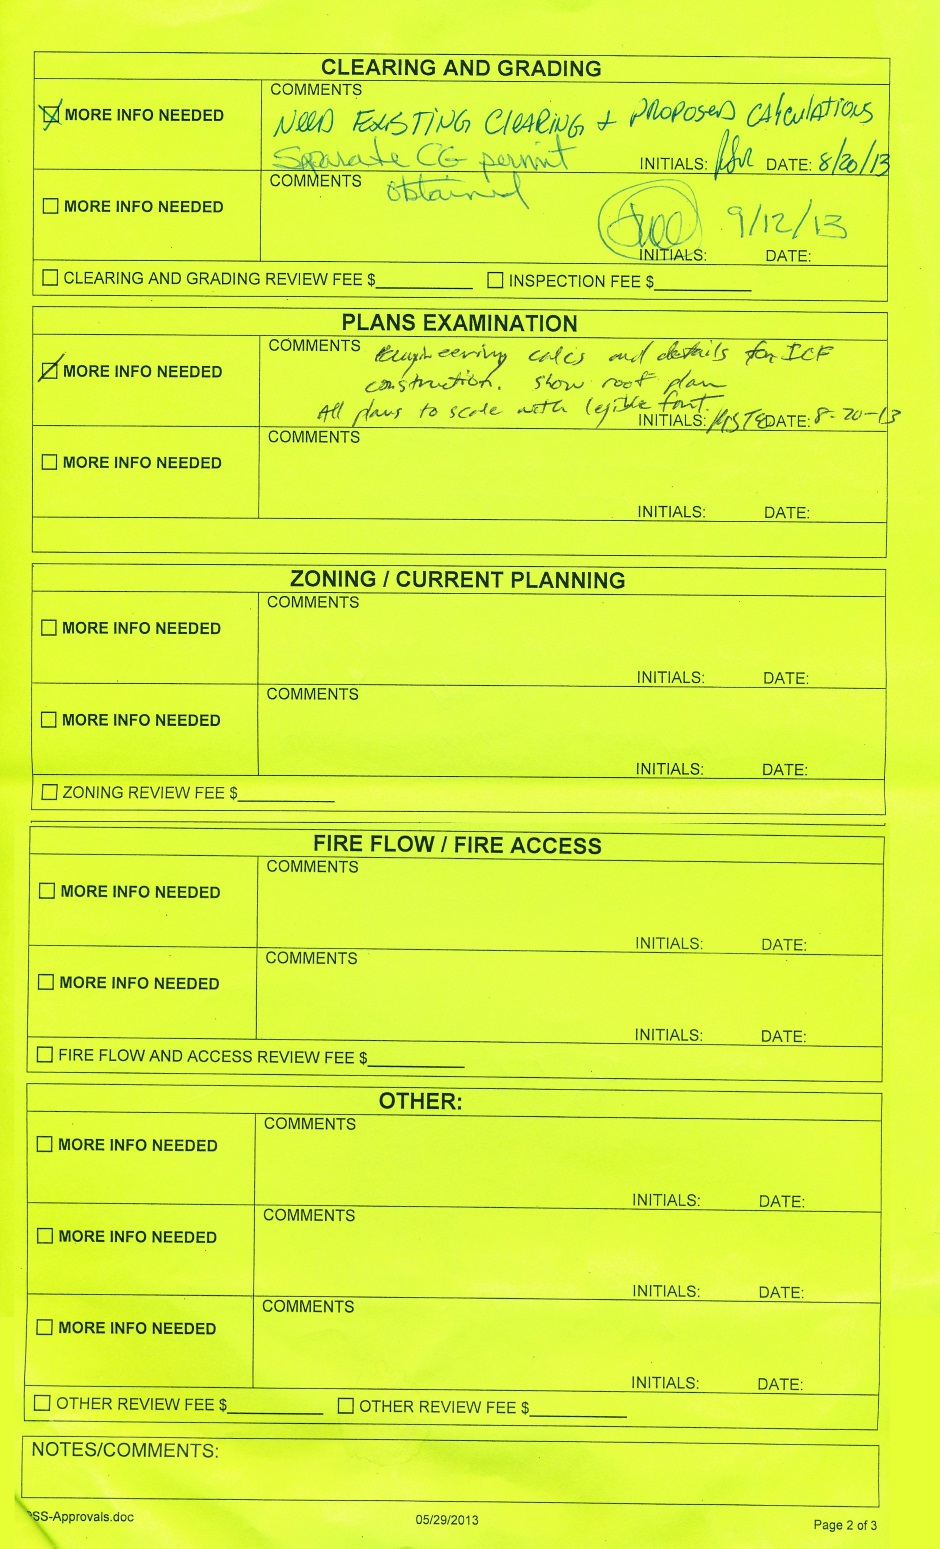 King County submital form